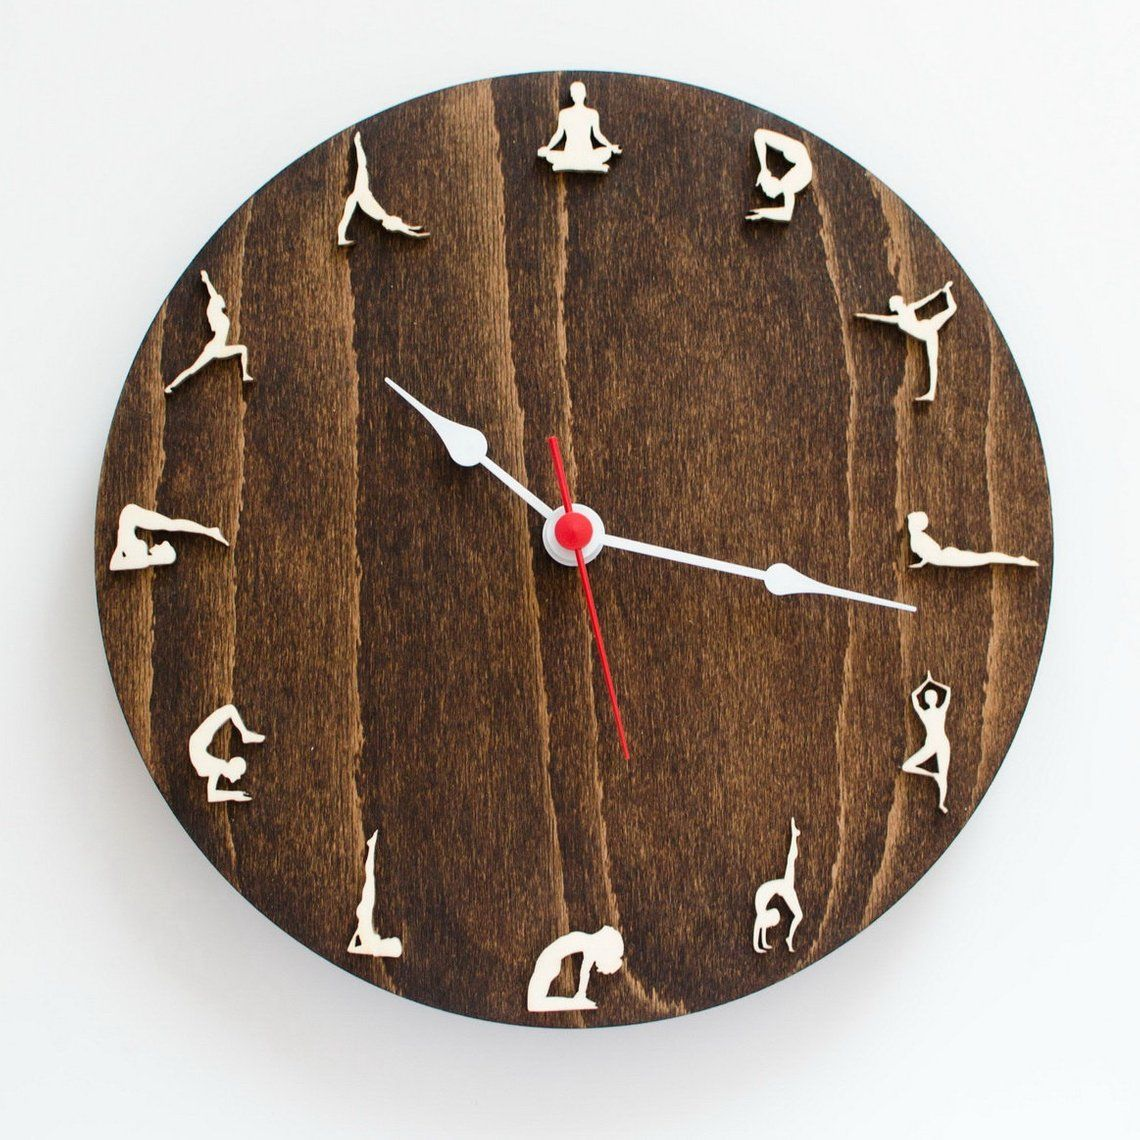 Yoga Valentines Day Gift Wall Clock With Yoga Poses Zen Etsy Wall Clock Clock Wood Wall Clock